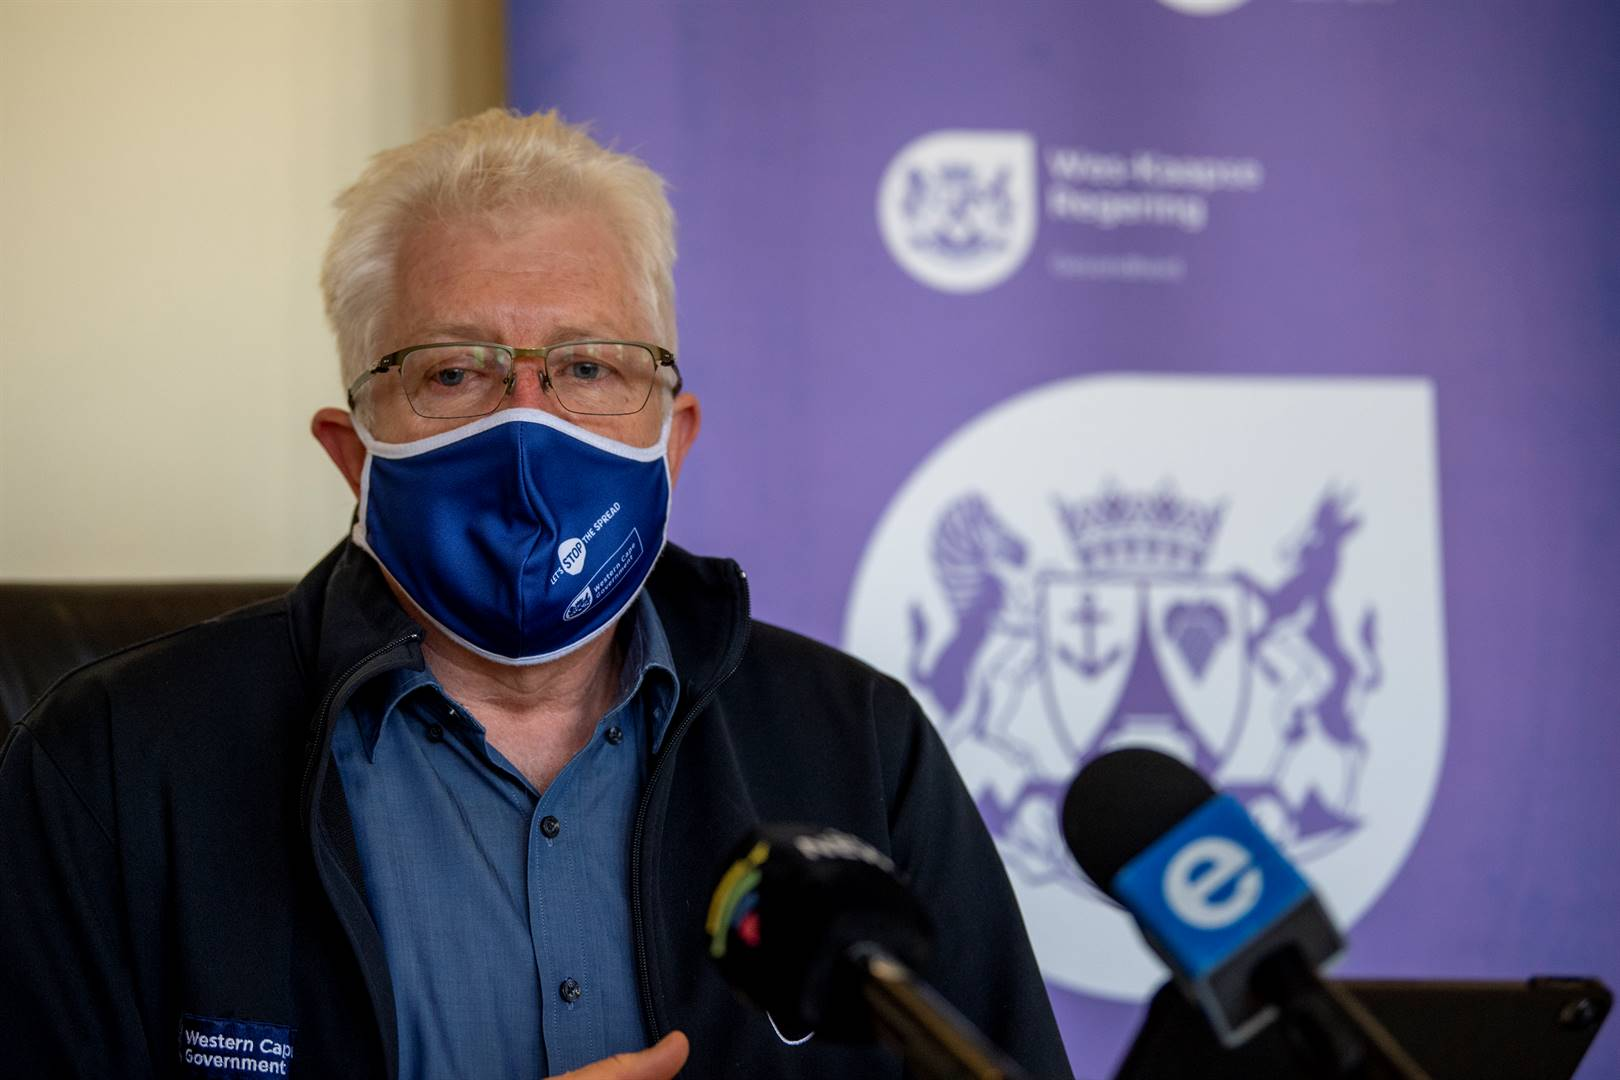 Western Cape Premier Alan Winde  says they are devastated following the temporary hold on vaccines.